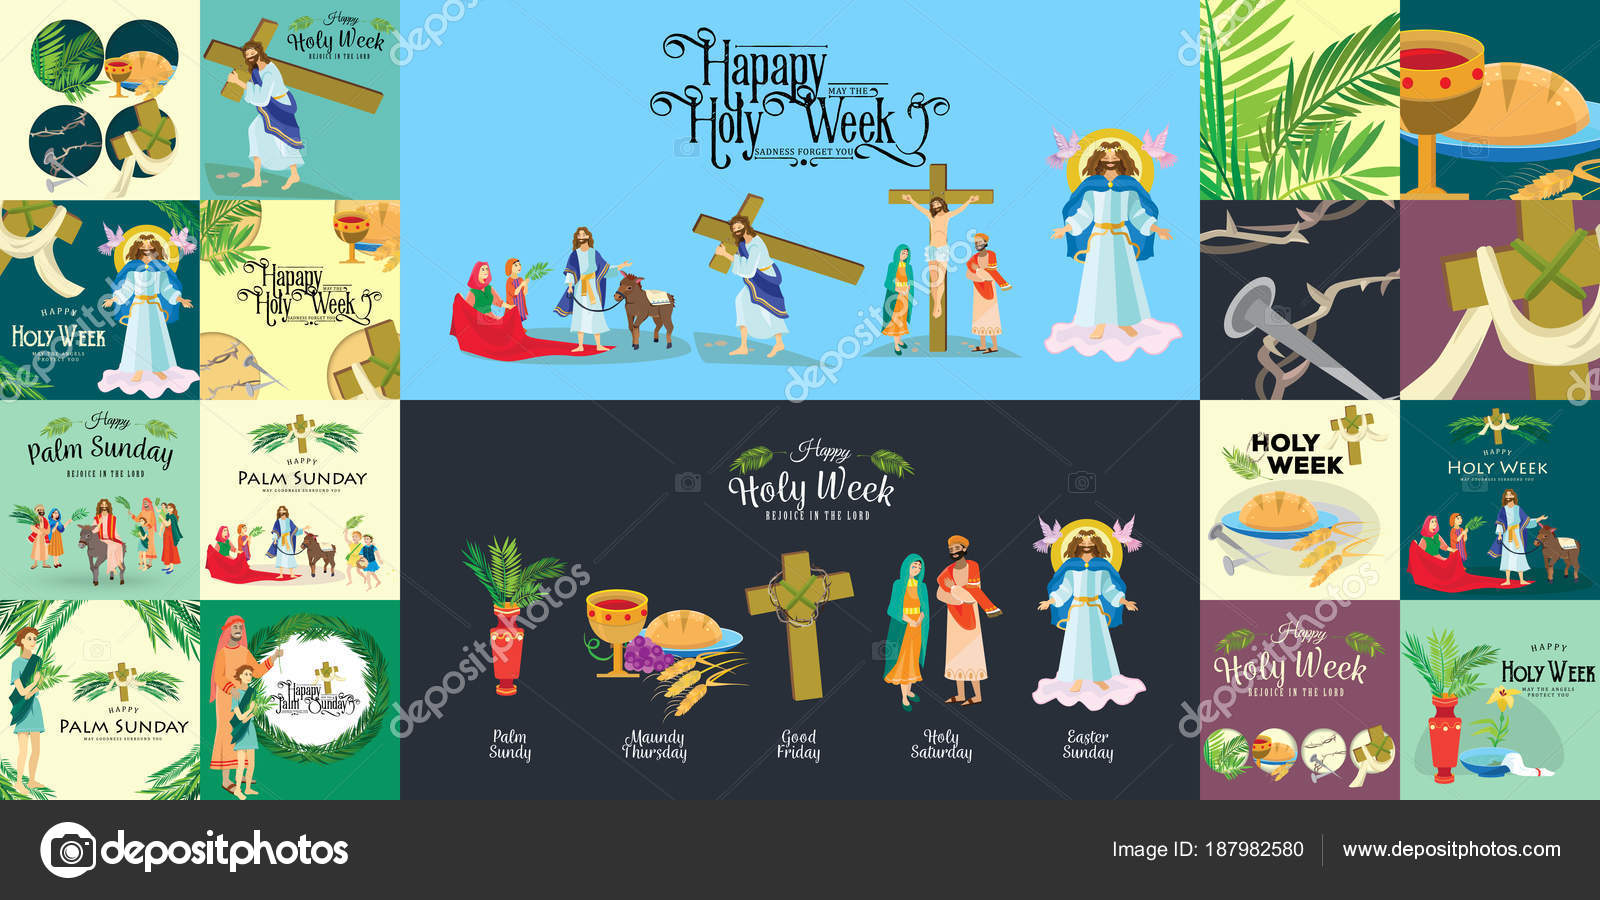 Holy week clipart crown thorns. Set for christianity before